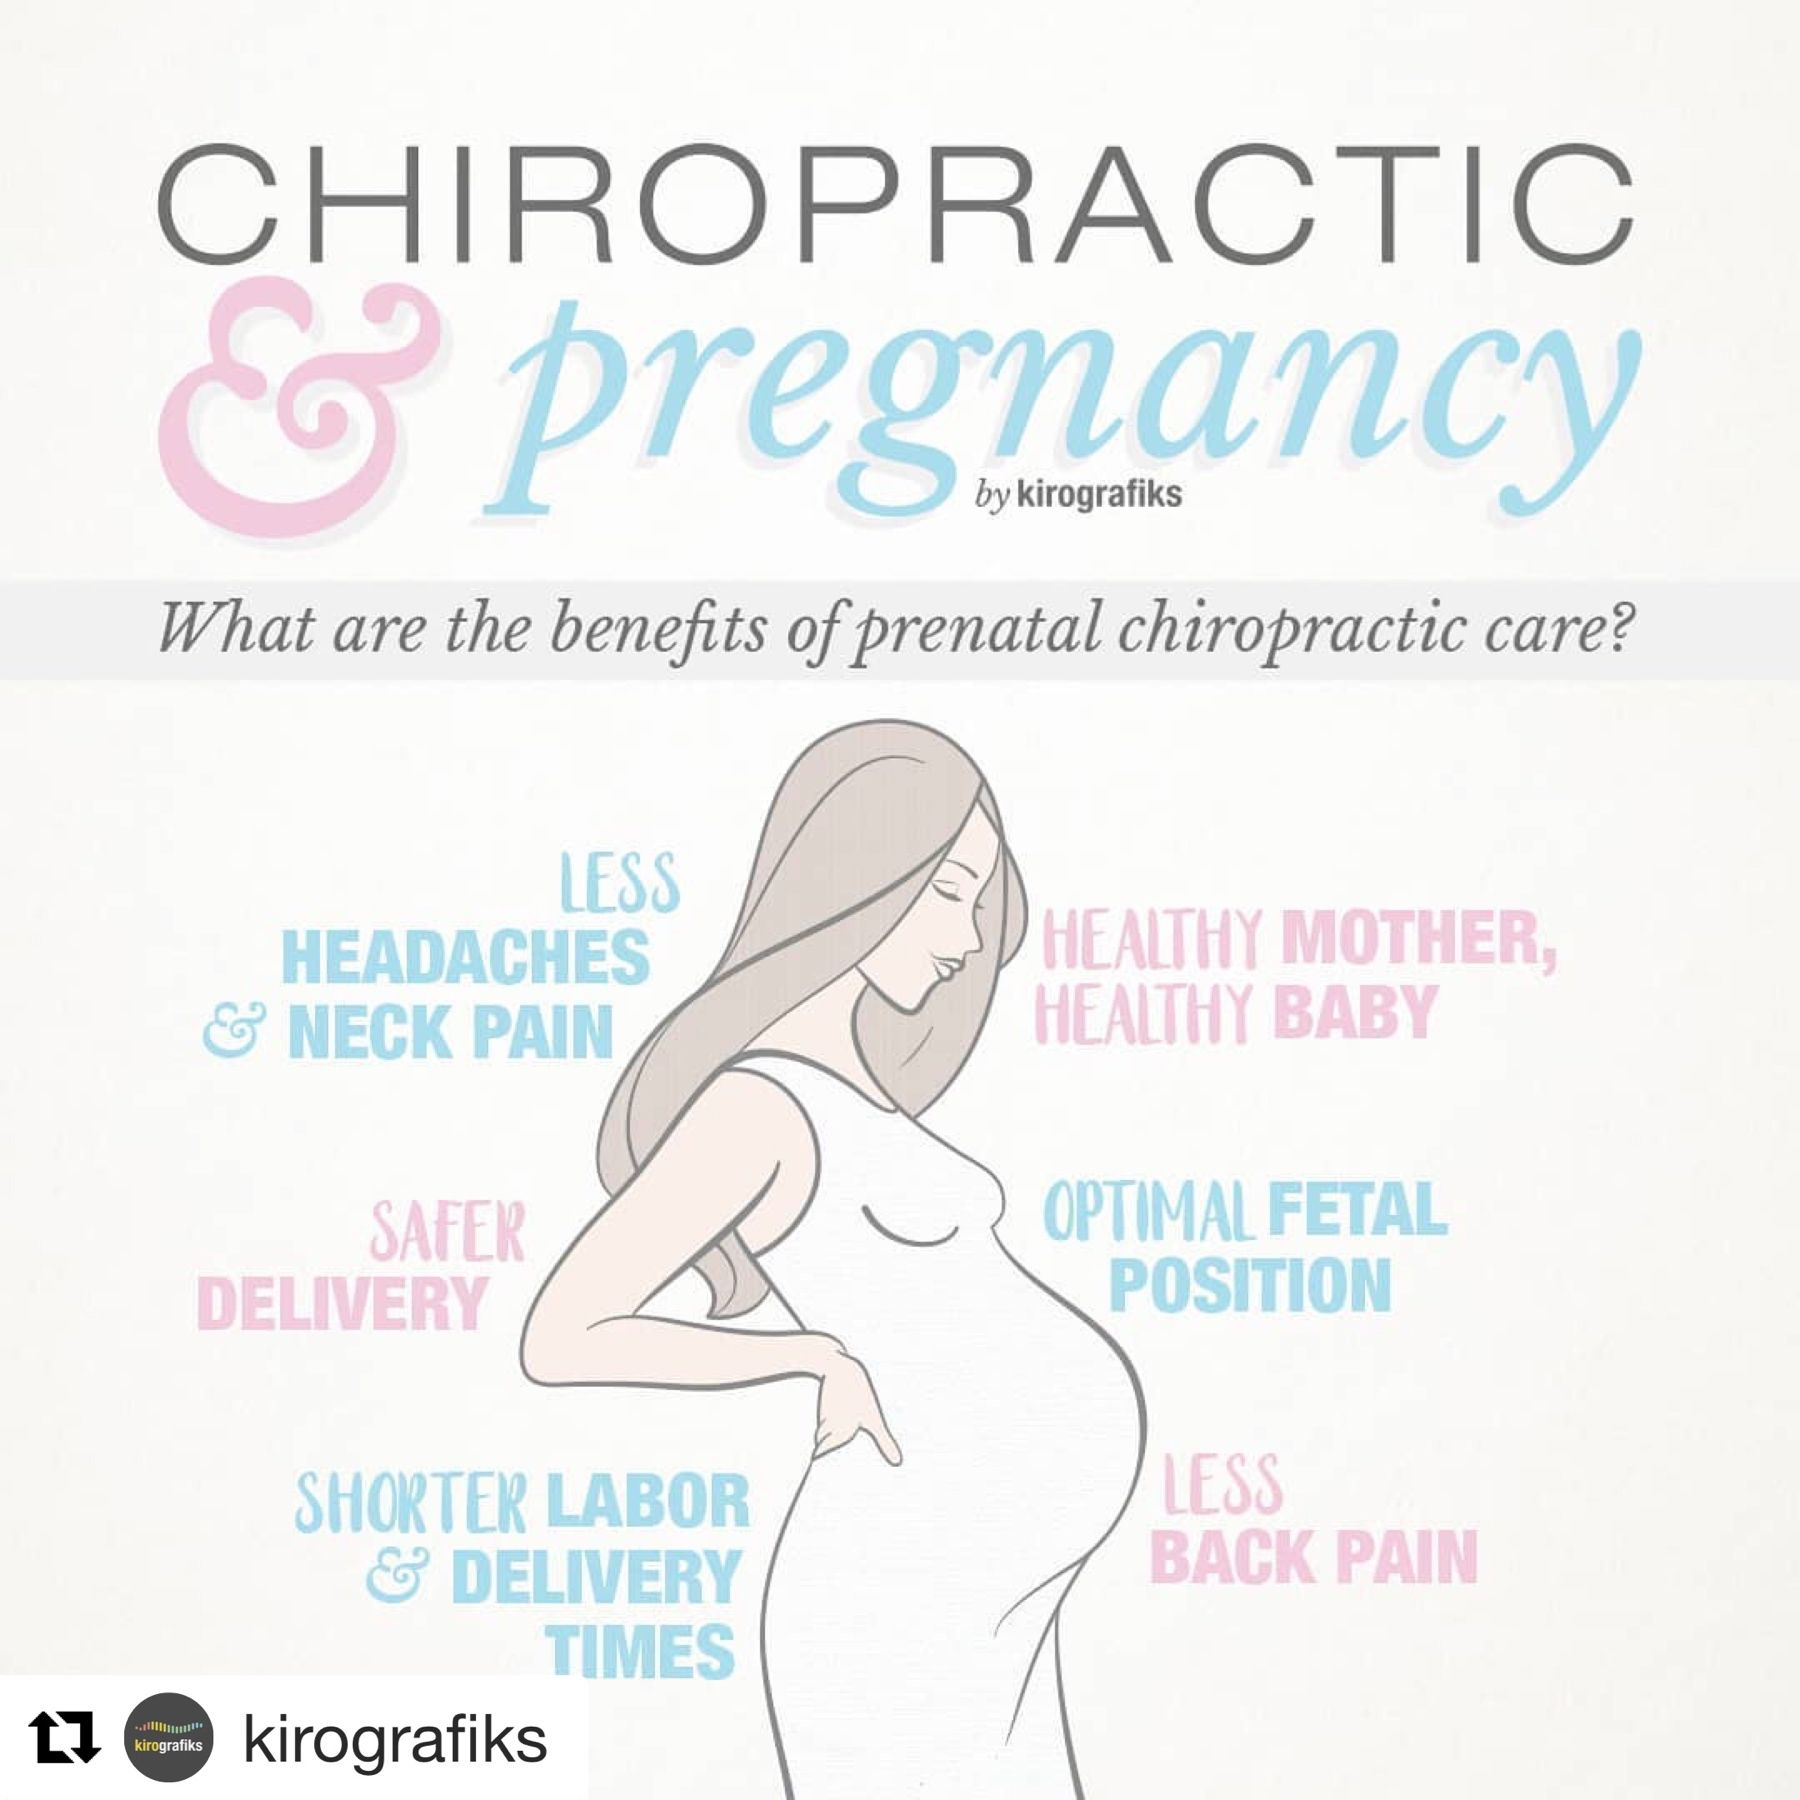 Did You Know There Are So Many Benefits To Prenatal Chiropractic